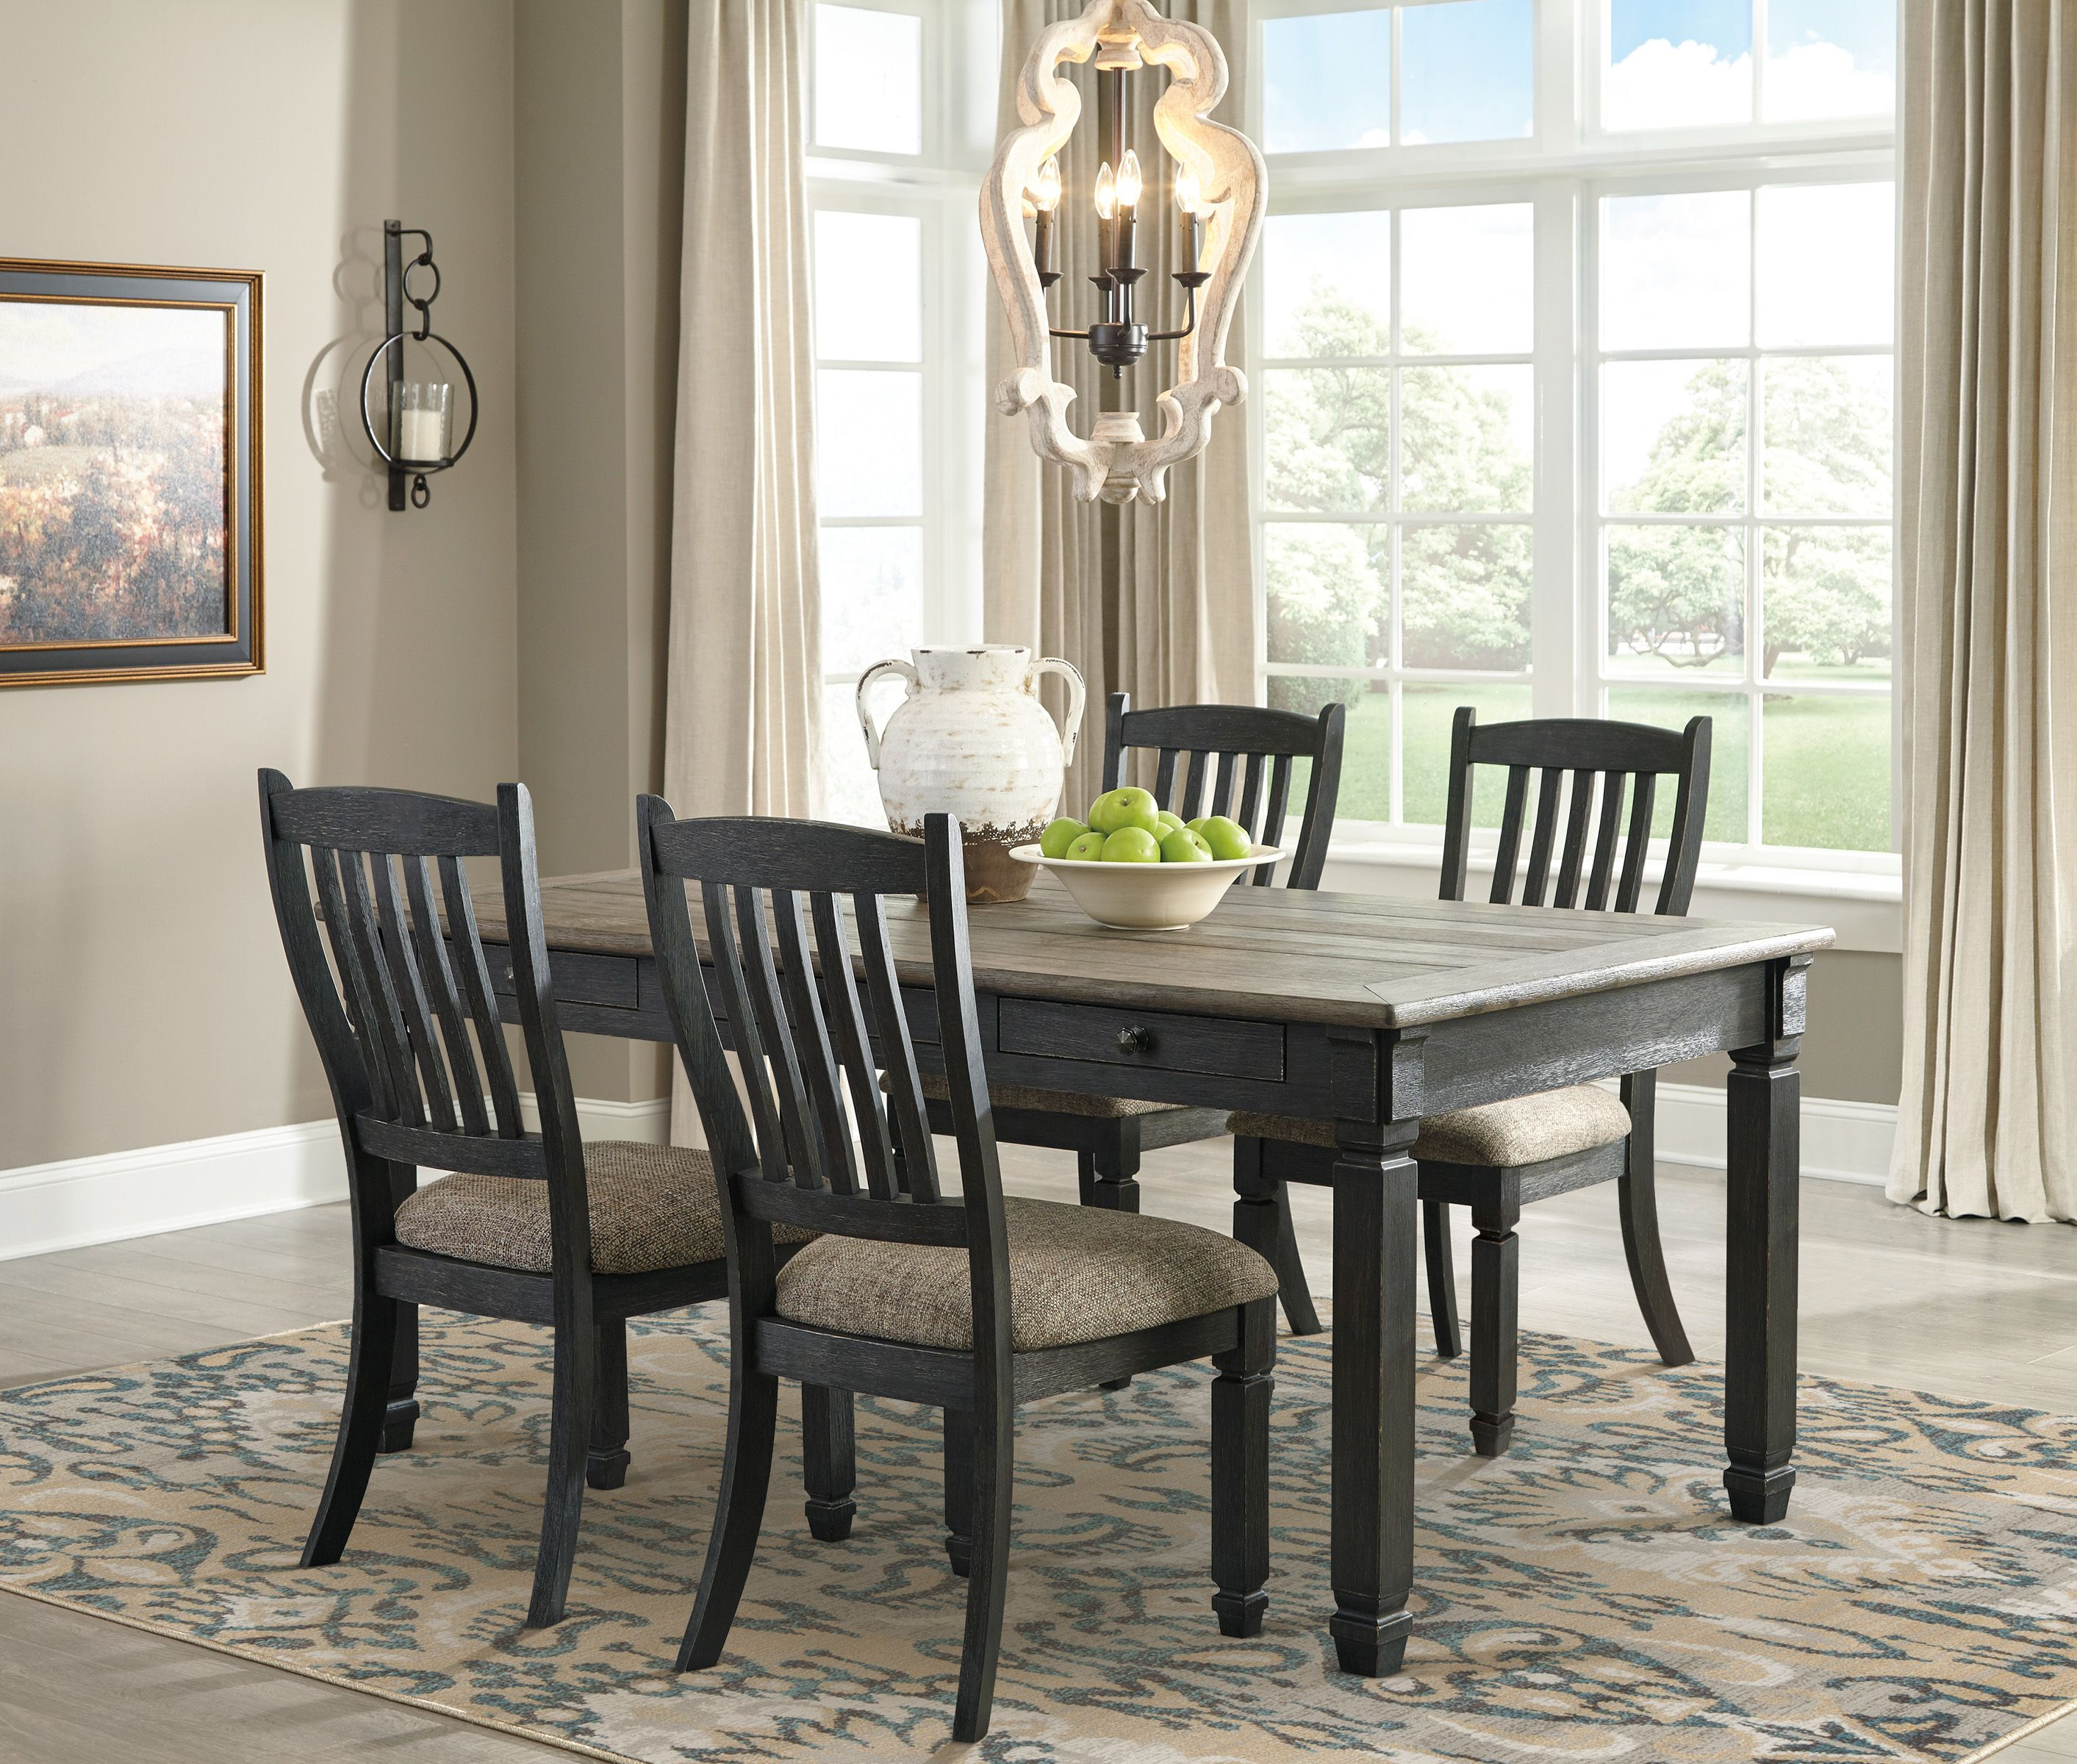 Tyler Creek 5 Piece Dining Room Dining Room Sets Dining Room